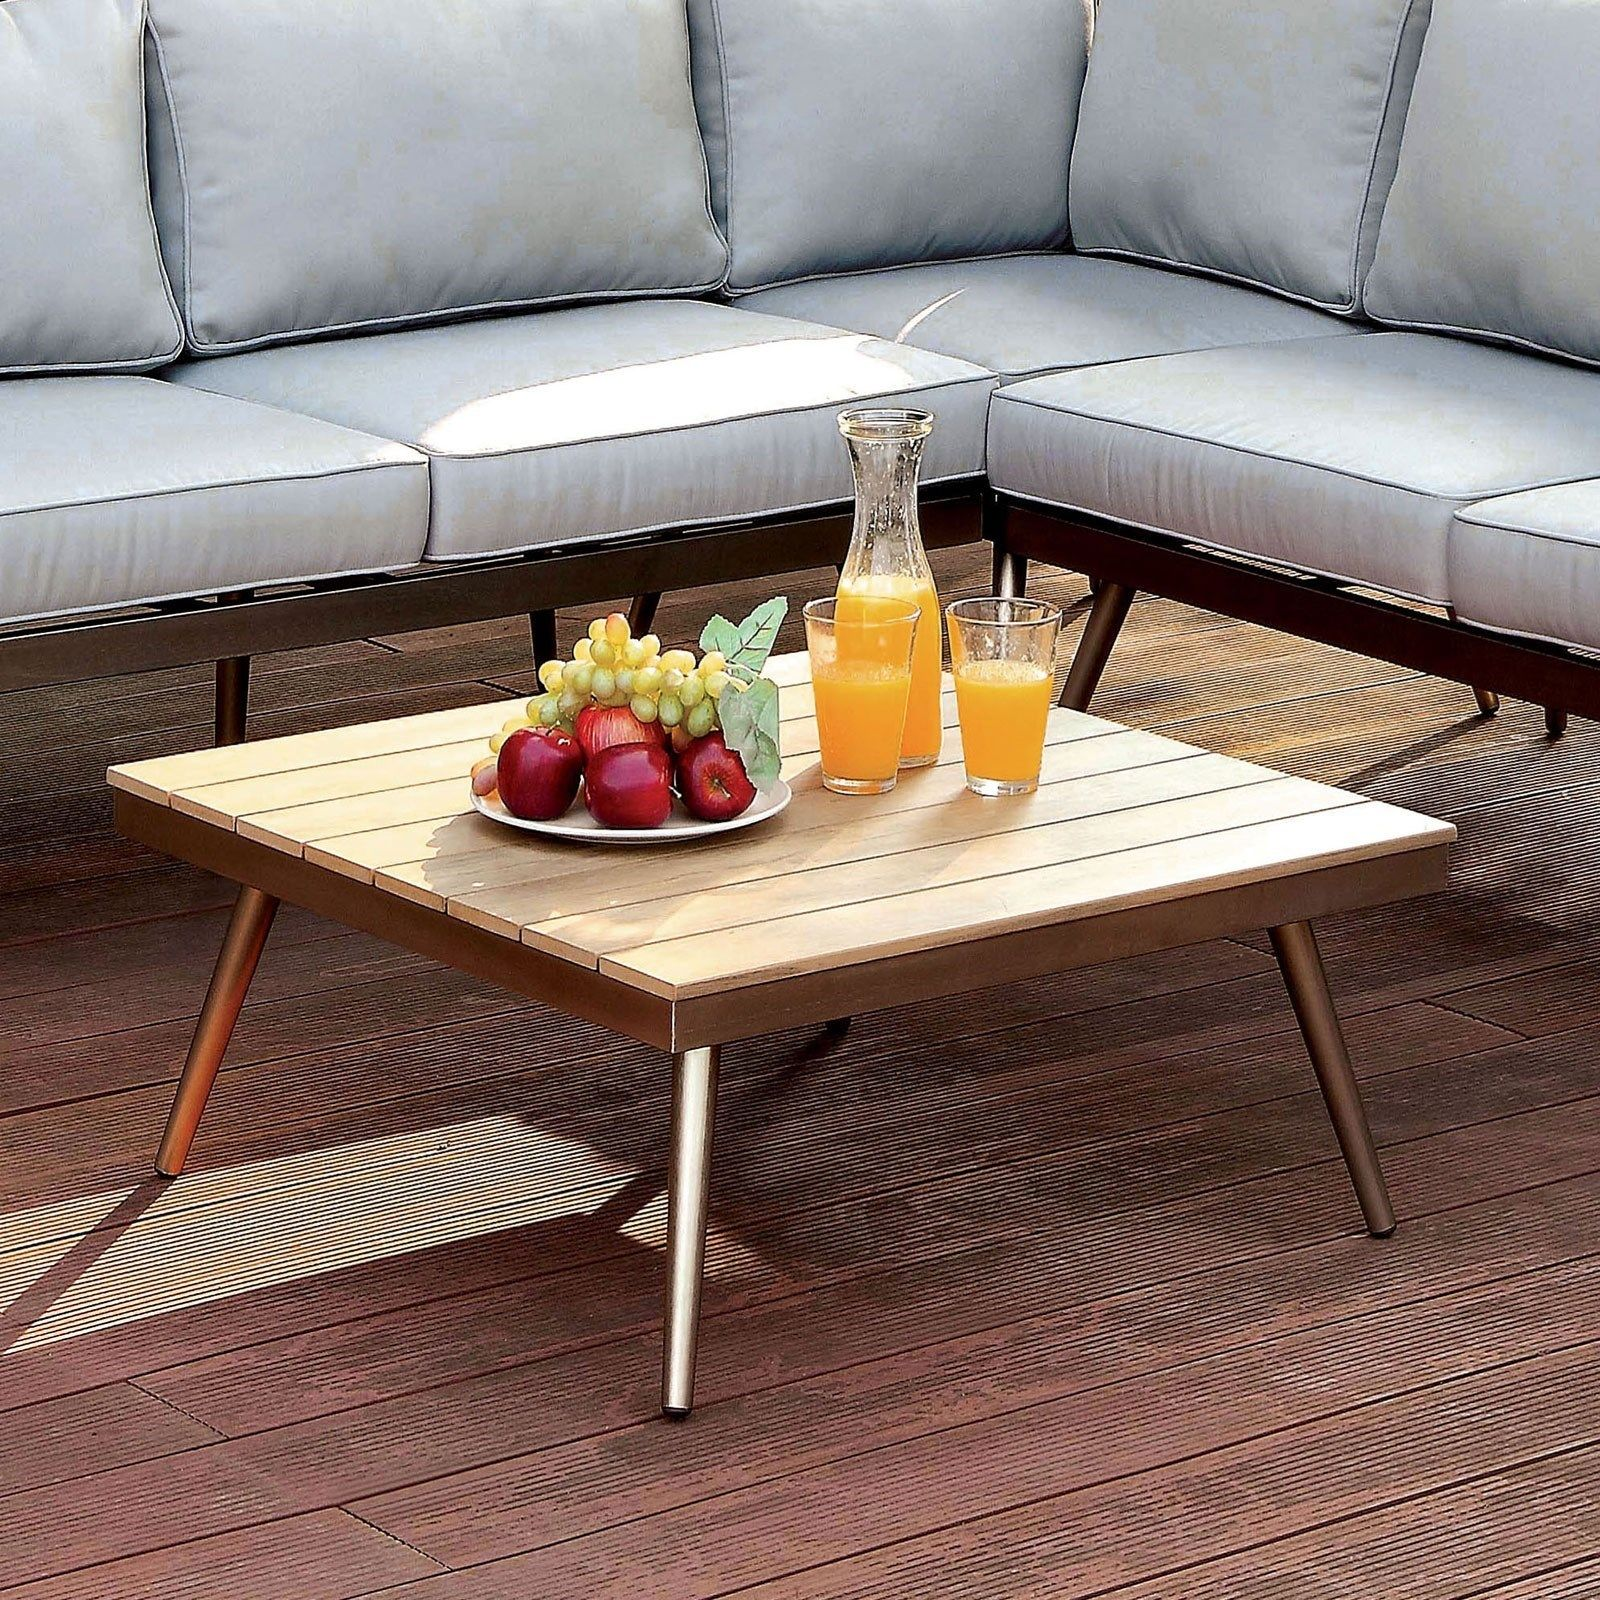 Download Wallpaper Patio Furniture Stores In Goodyear Az